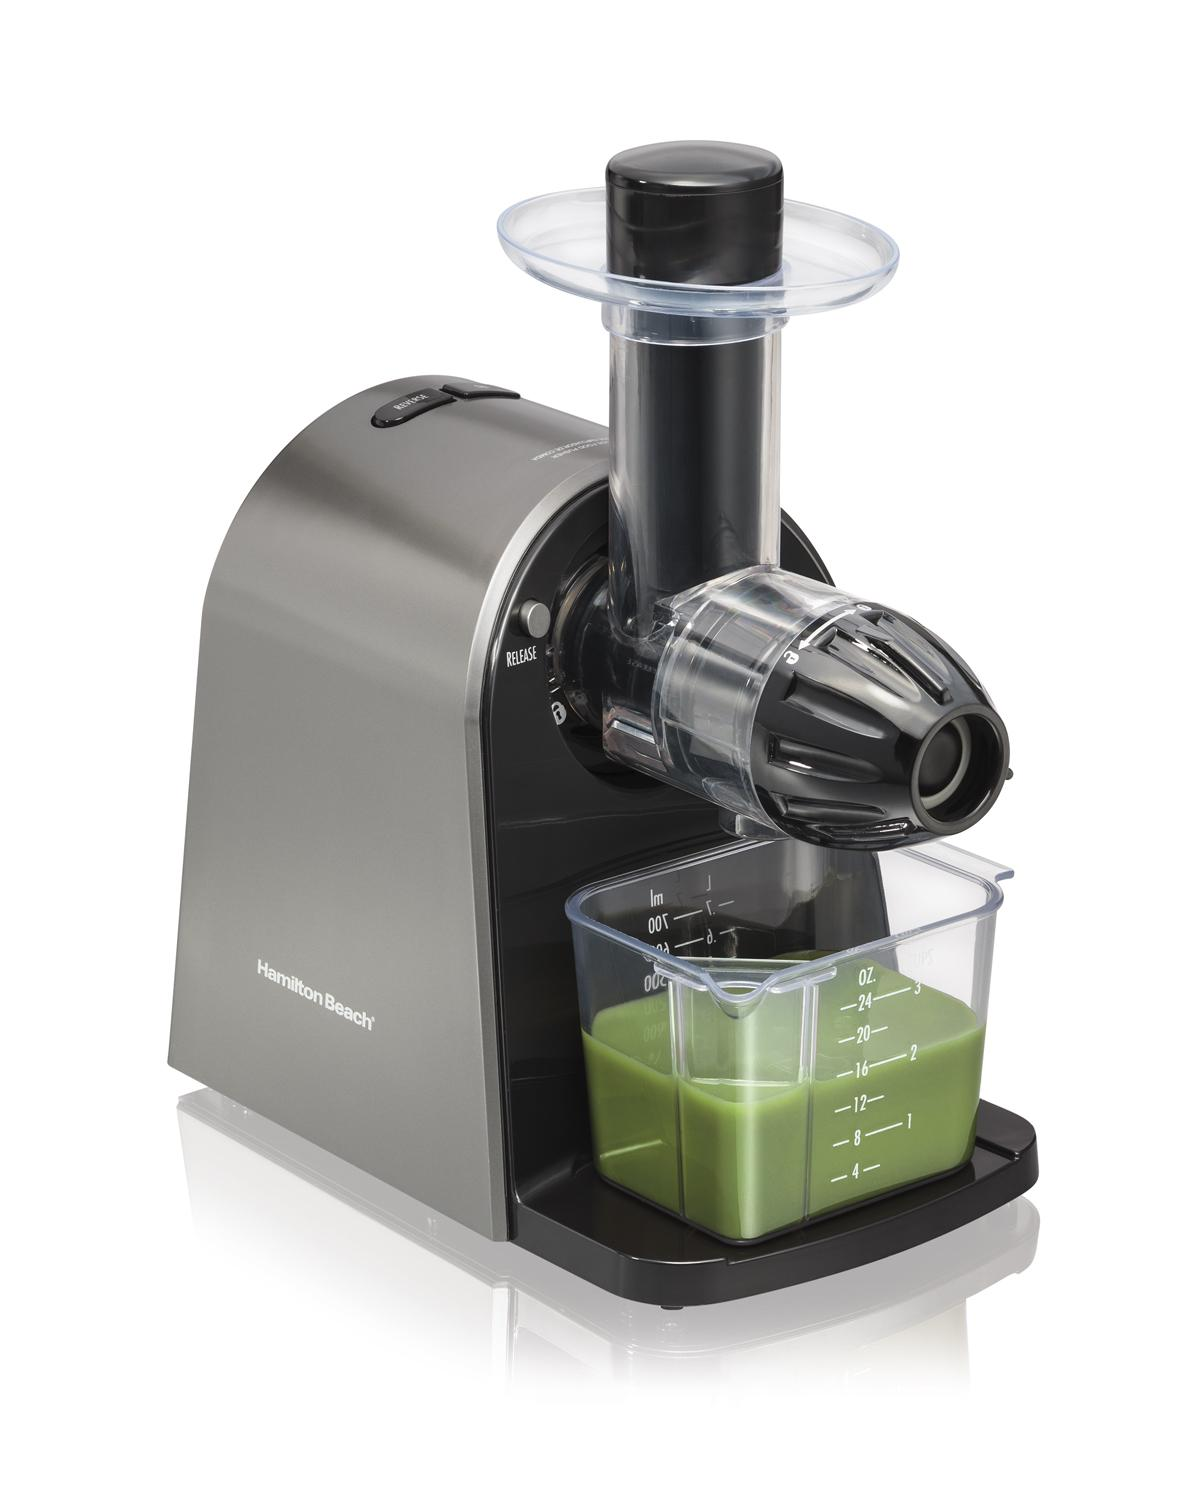 Omega Slow Juicer Review : juicer breville commercial cuisinart omega extractor slow juicers electric vegetable masticating